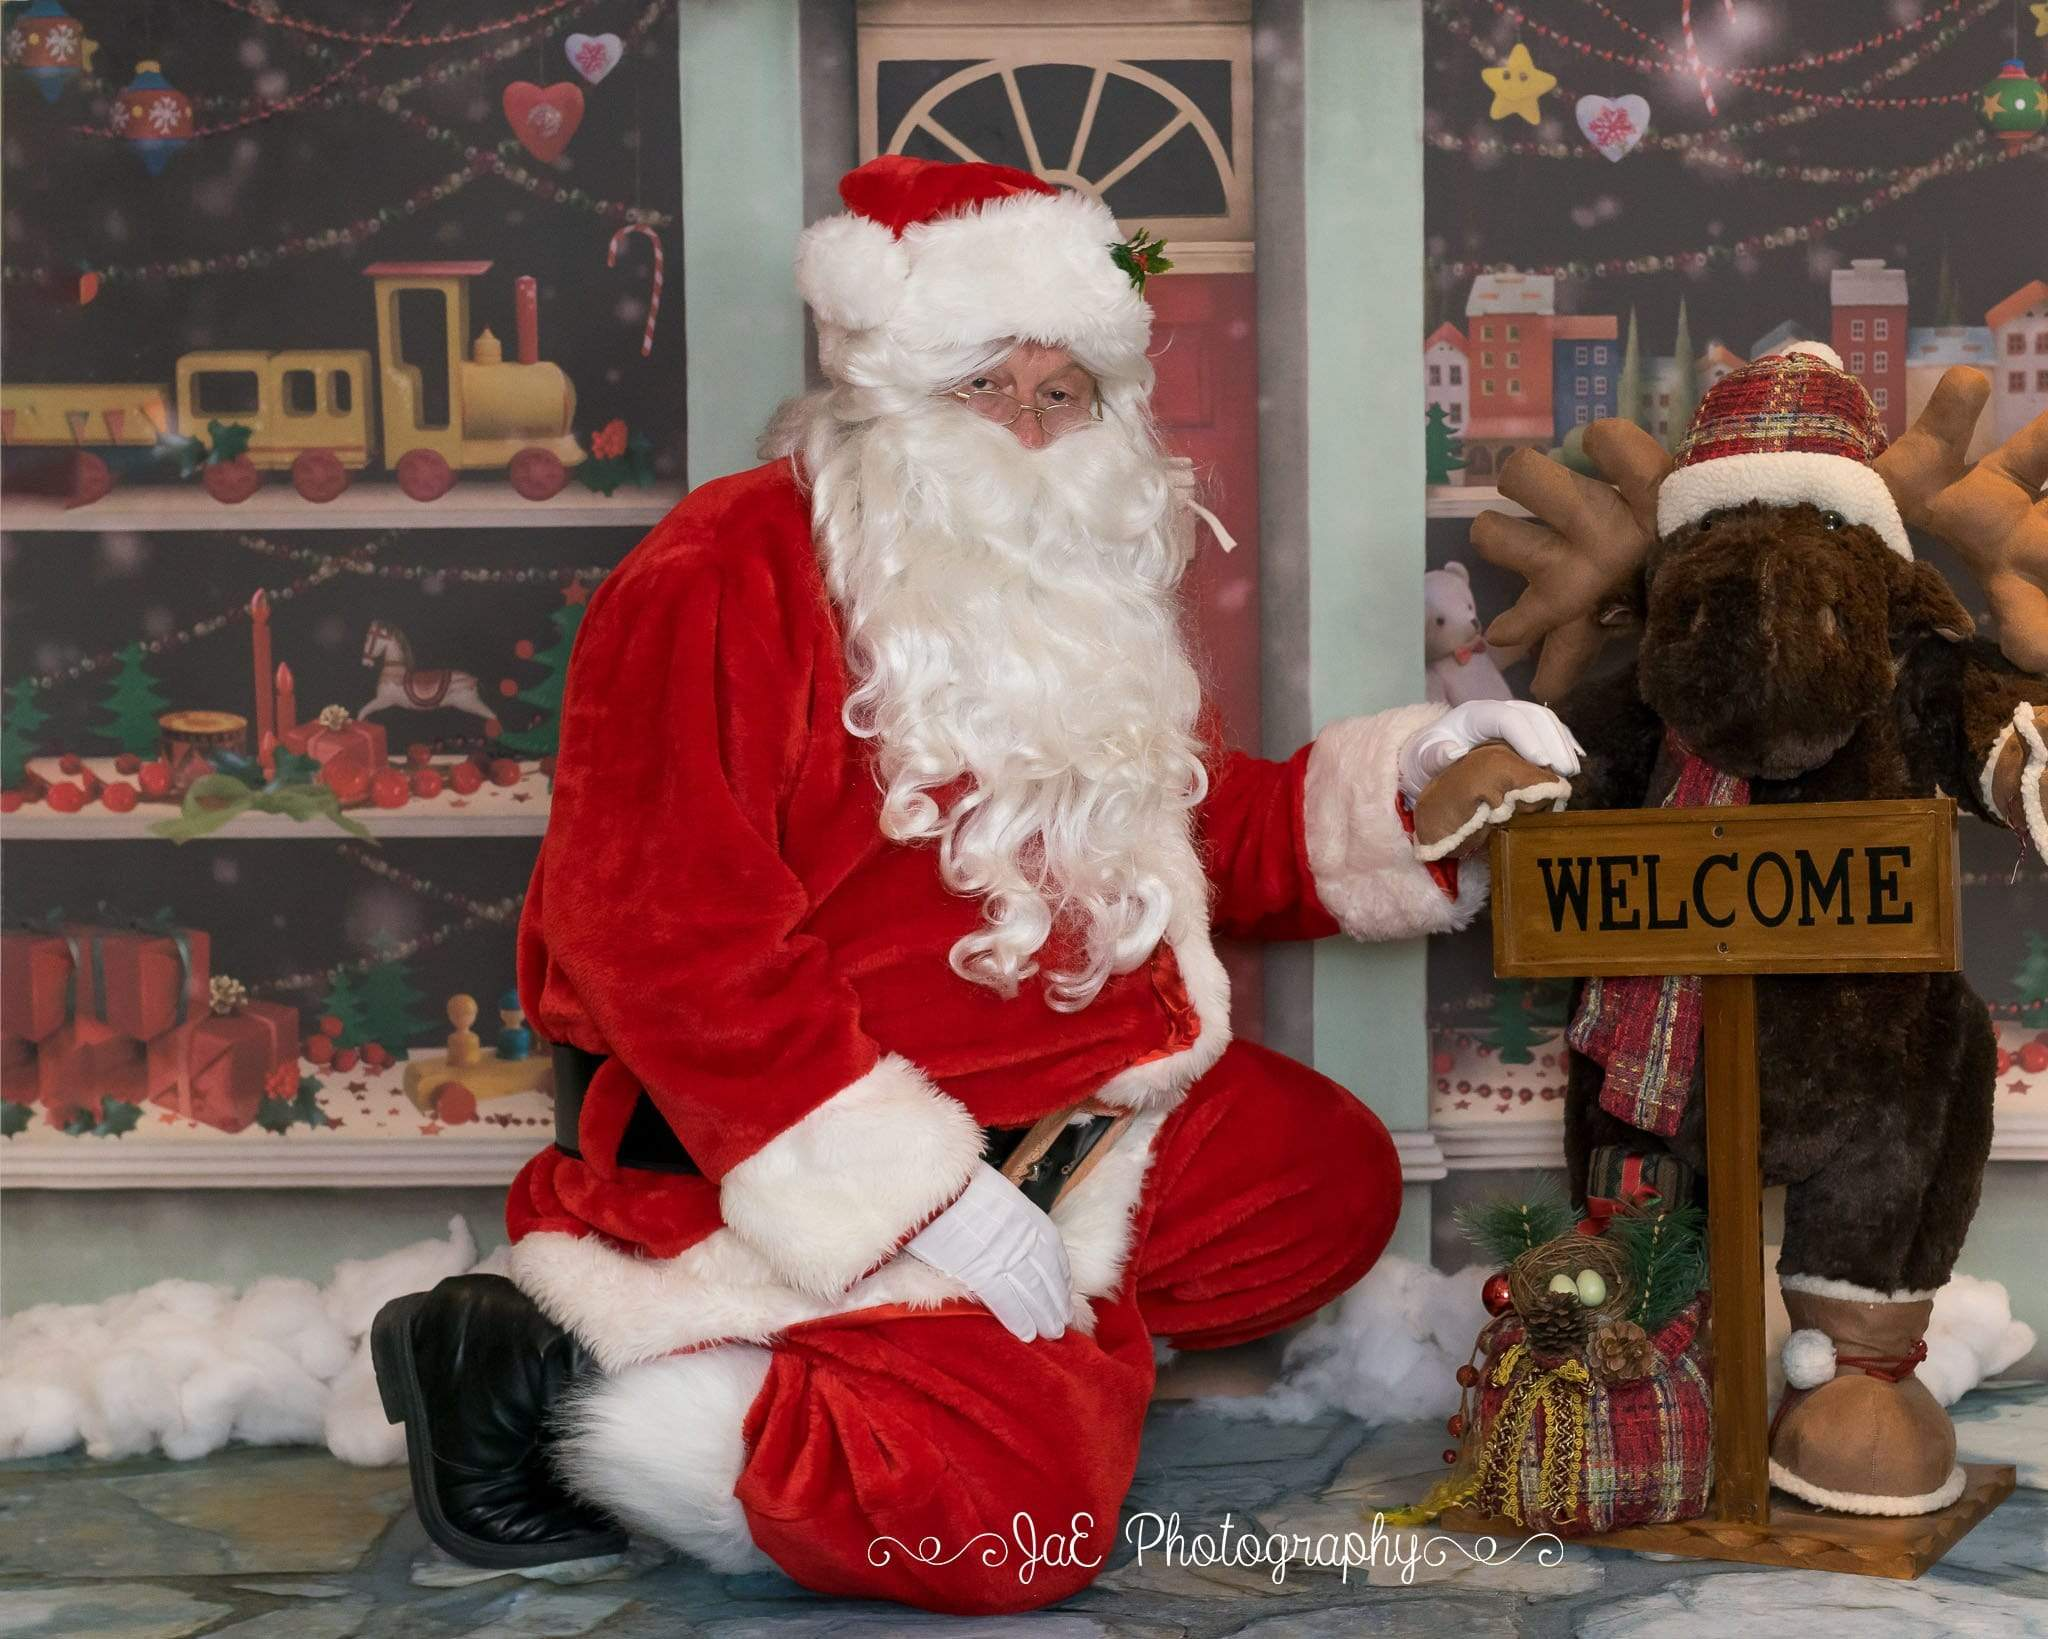 Load image into Gallery viewer, Katebackdrop£ºKate Christmas Santa Workshop Photography Backdrop Children Photo Background